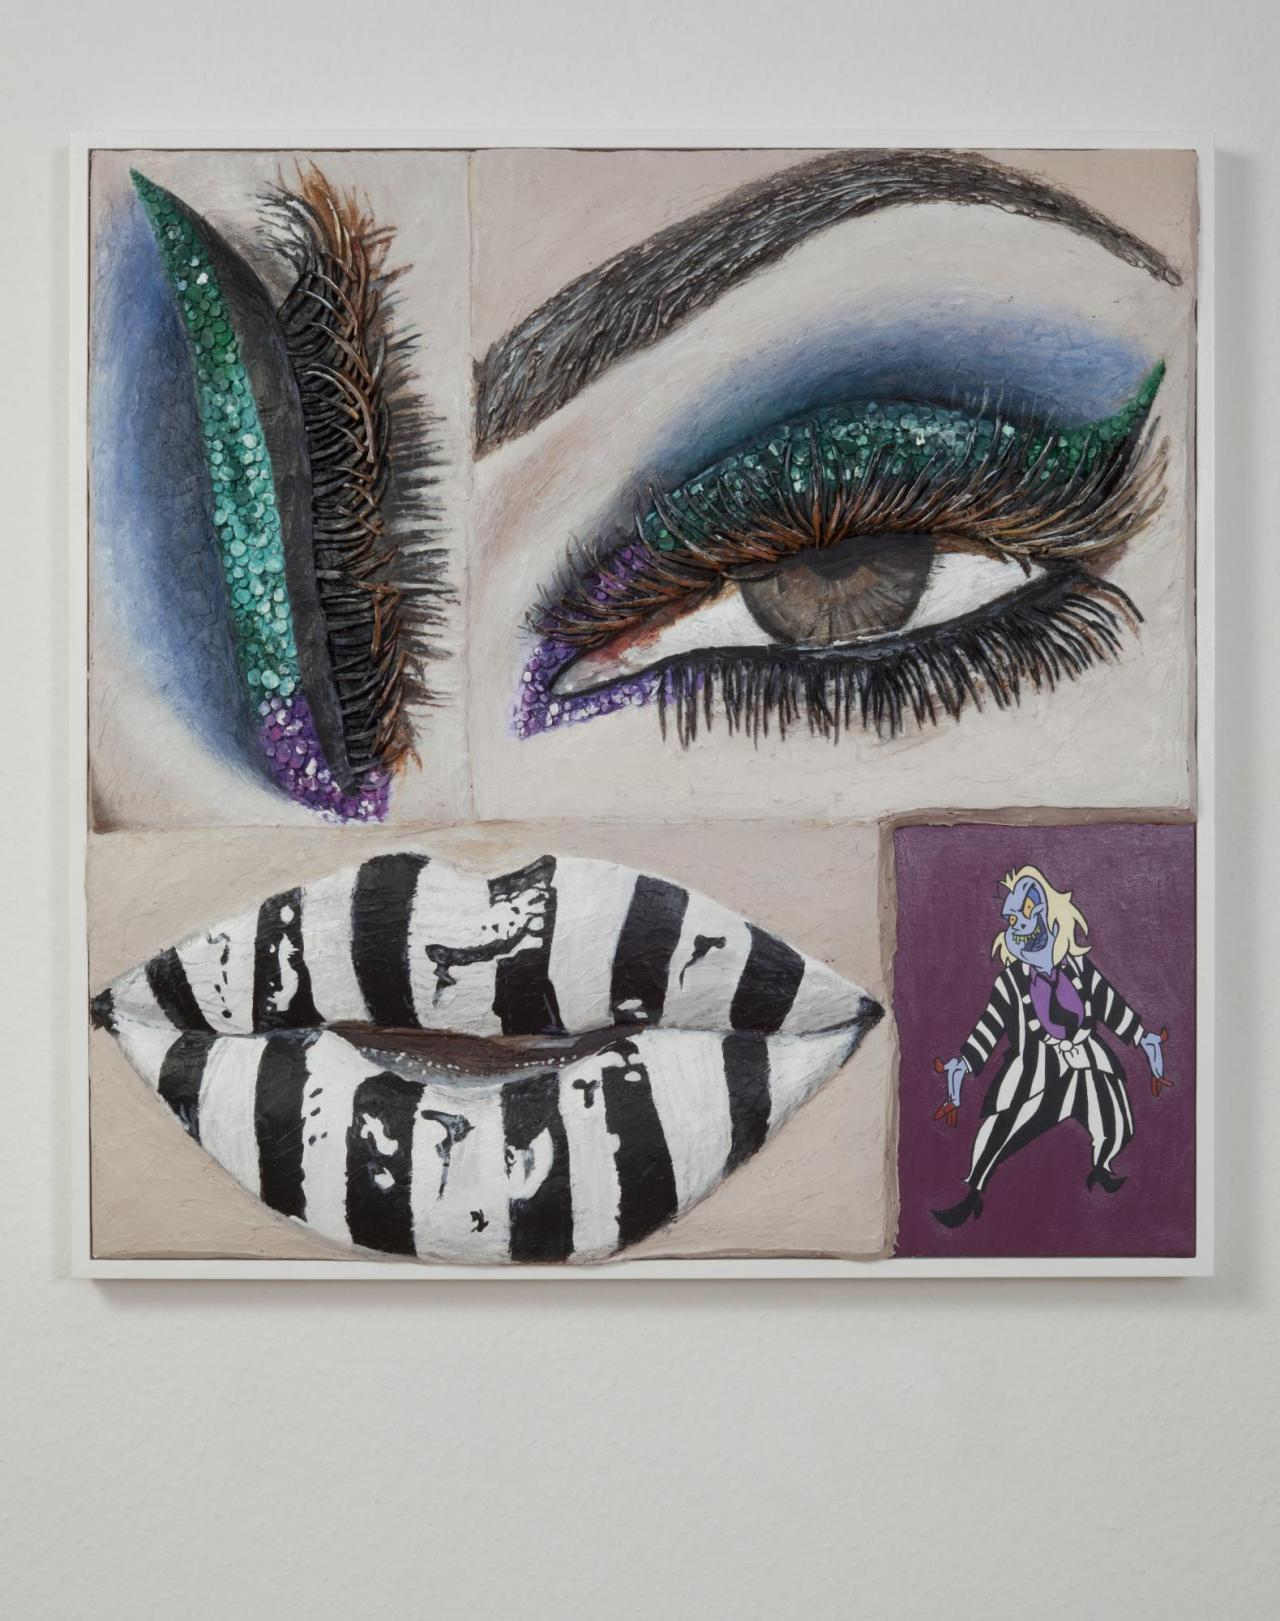 Beetlejuice Eye and Lip , 2017 Acrylic on canvas on panel with painted wood frame, 79 x 79 cm